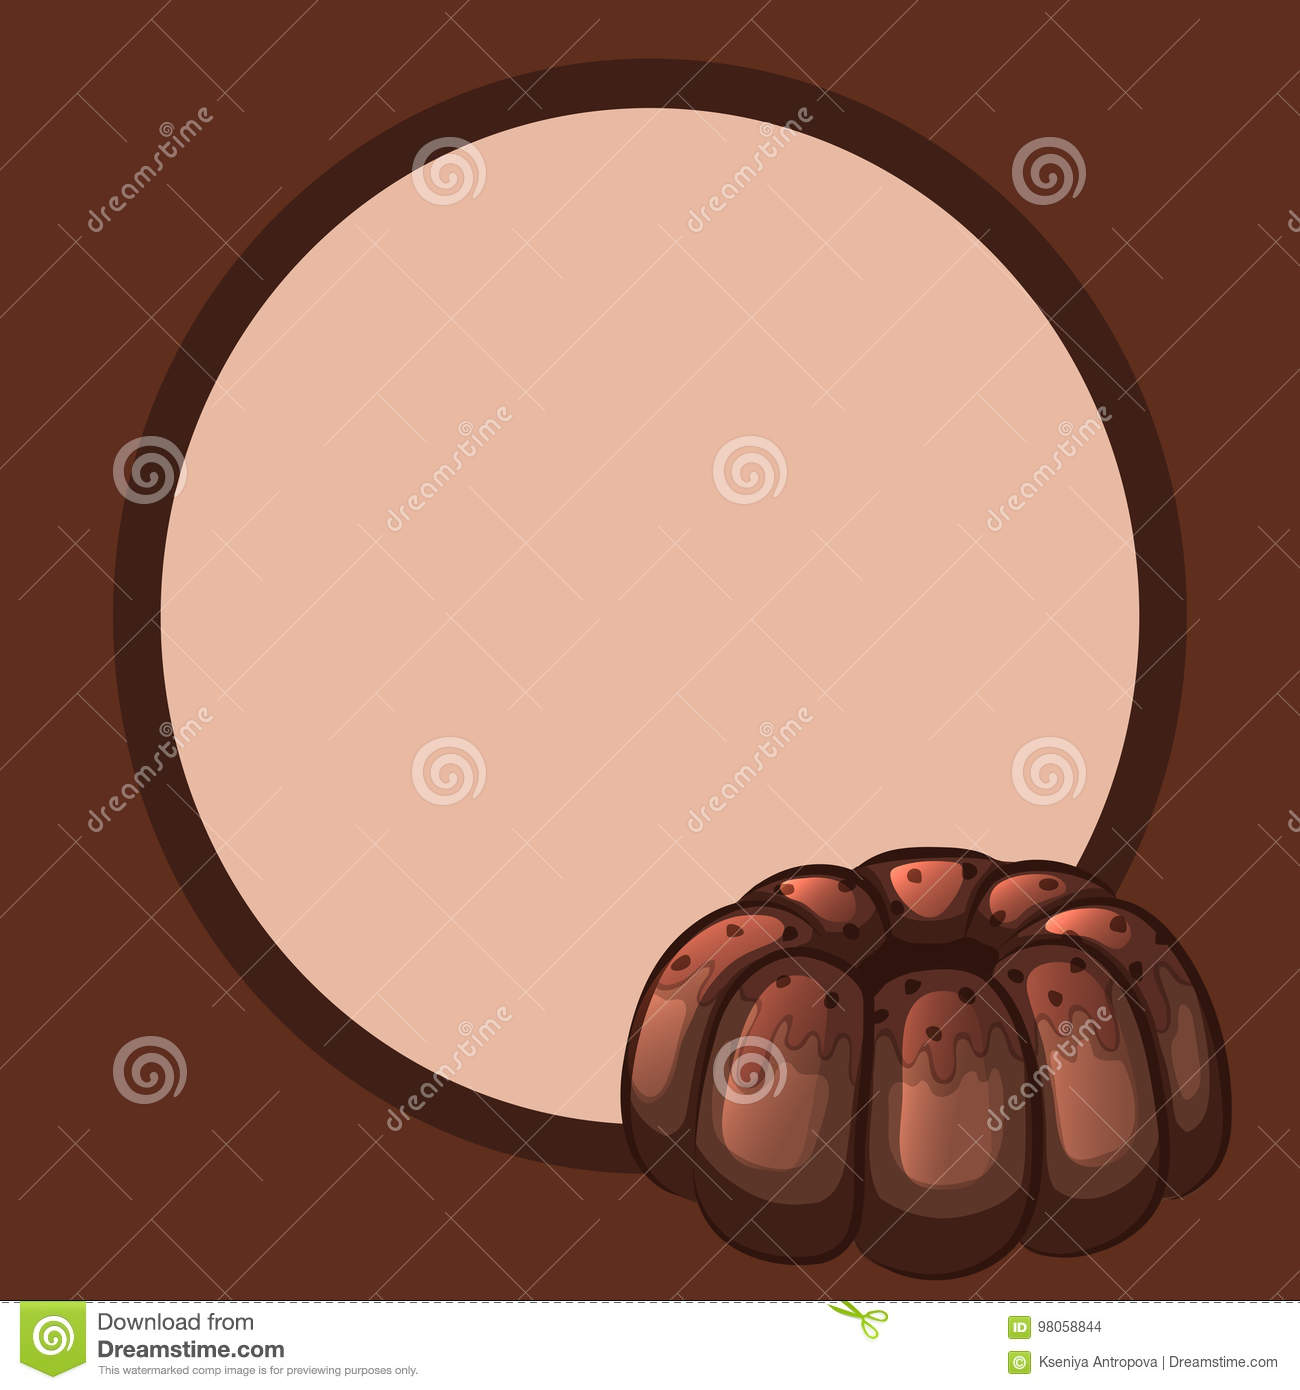 Frame And A Round Chocolate Cake Stock Vector Illustration Of